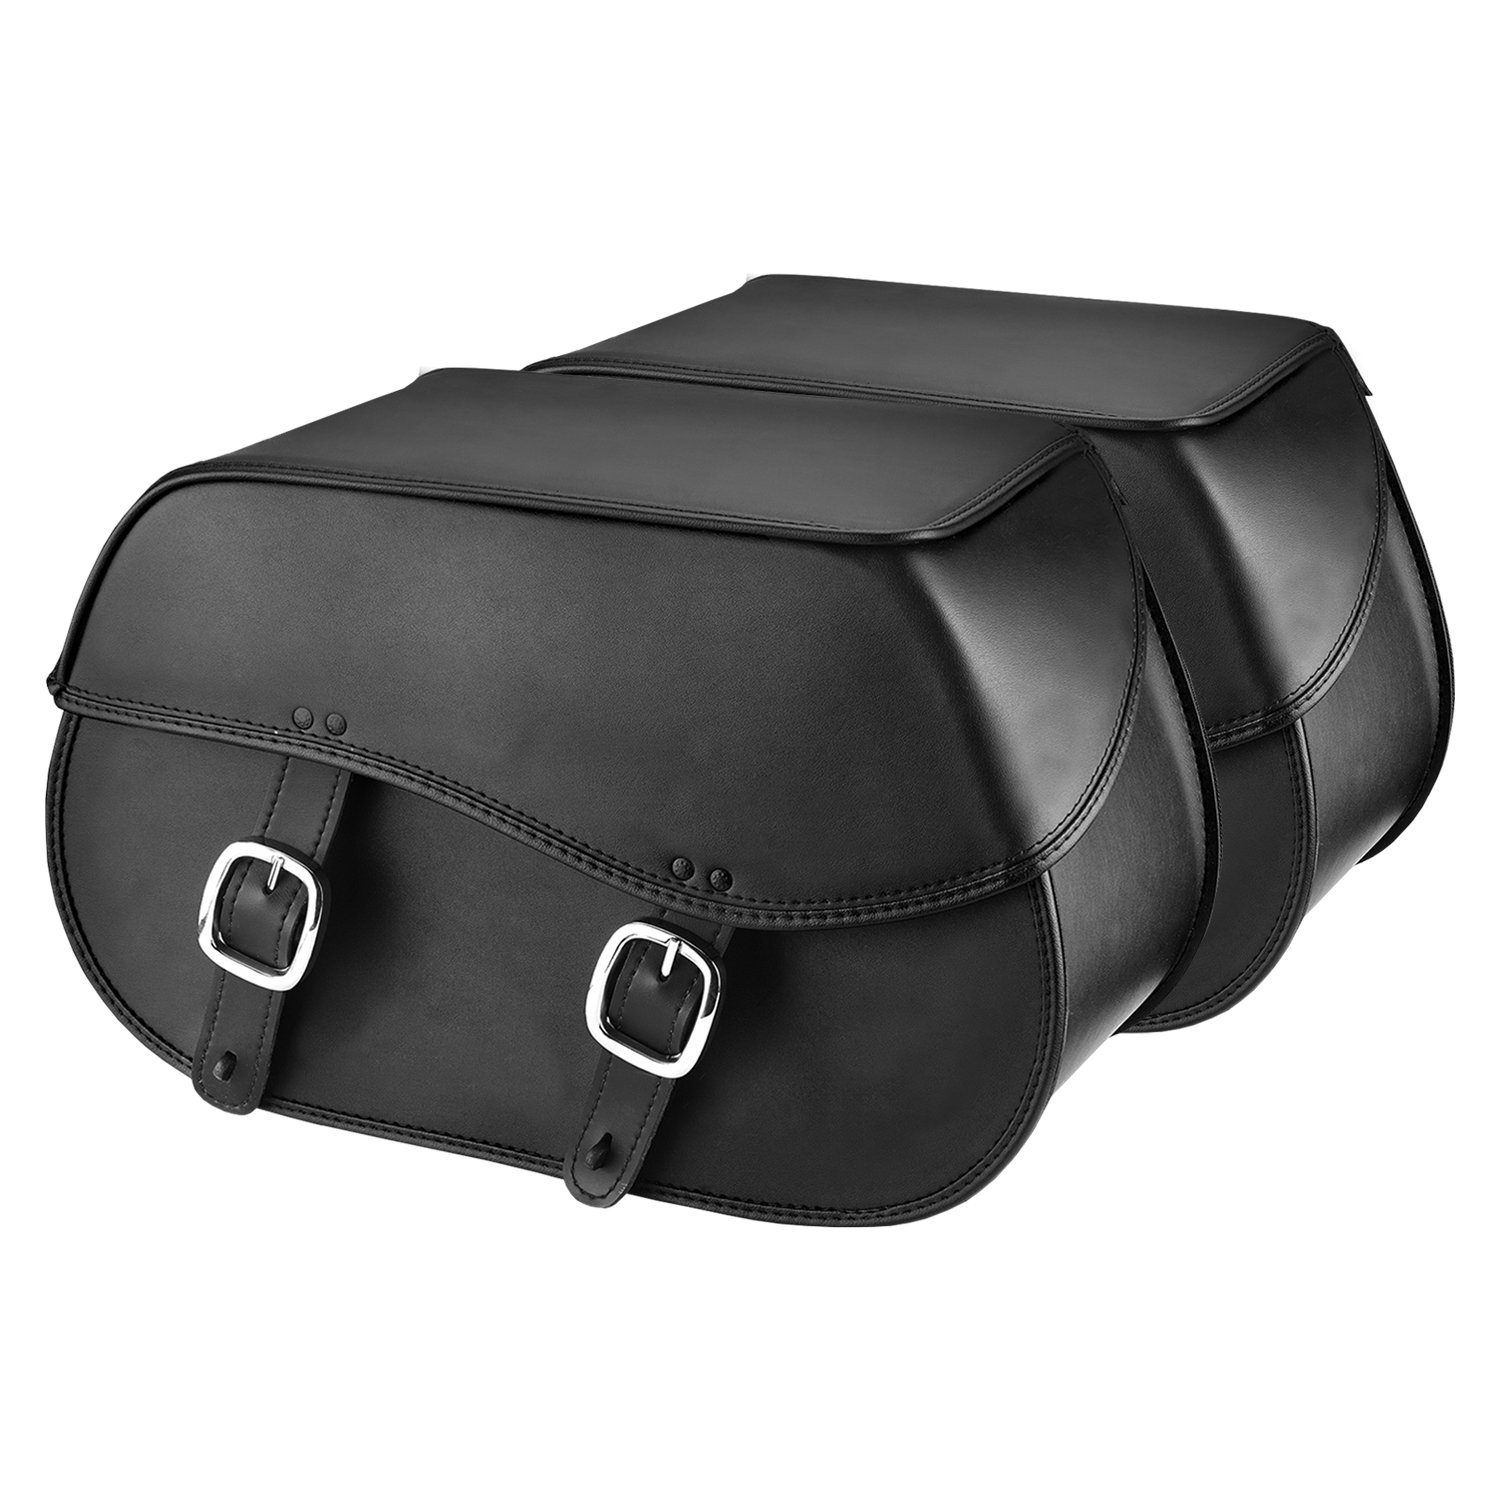 Nomad USA Extra-Large Leather Throw-Over Motorcycle Saddlebags (Studded) TN72S